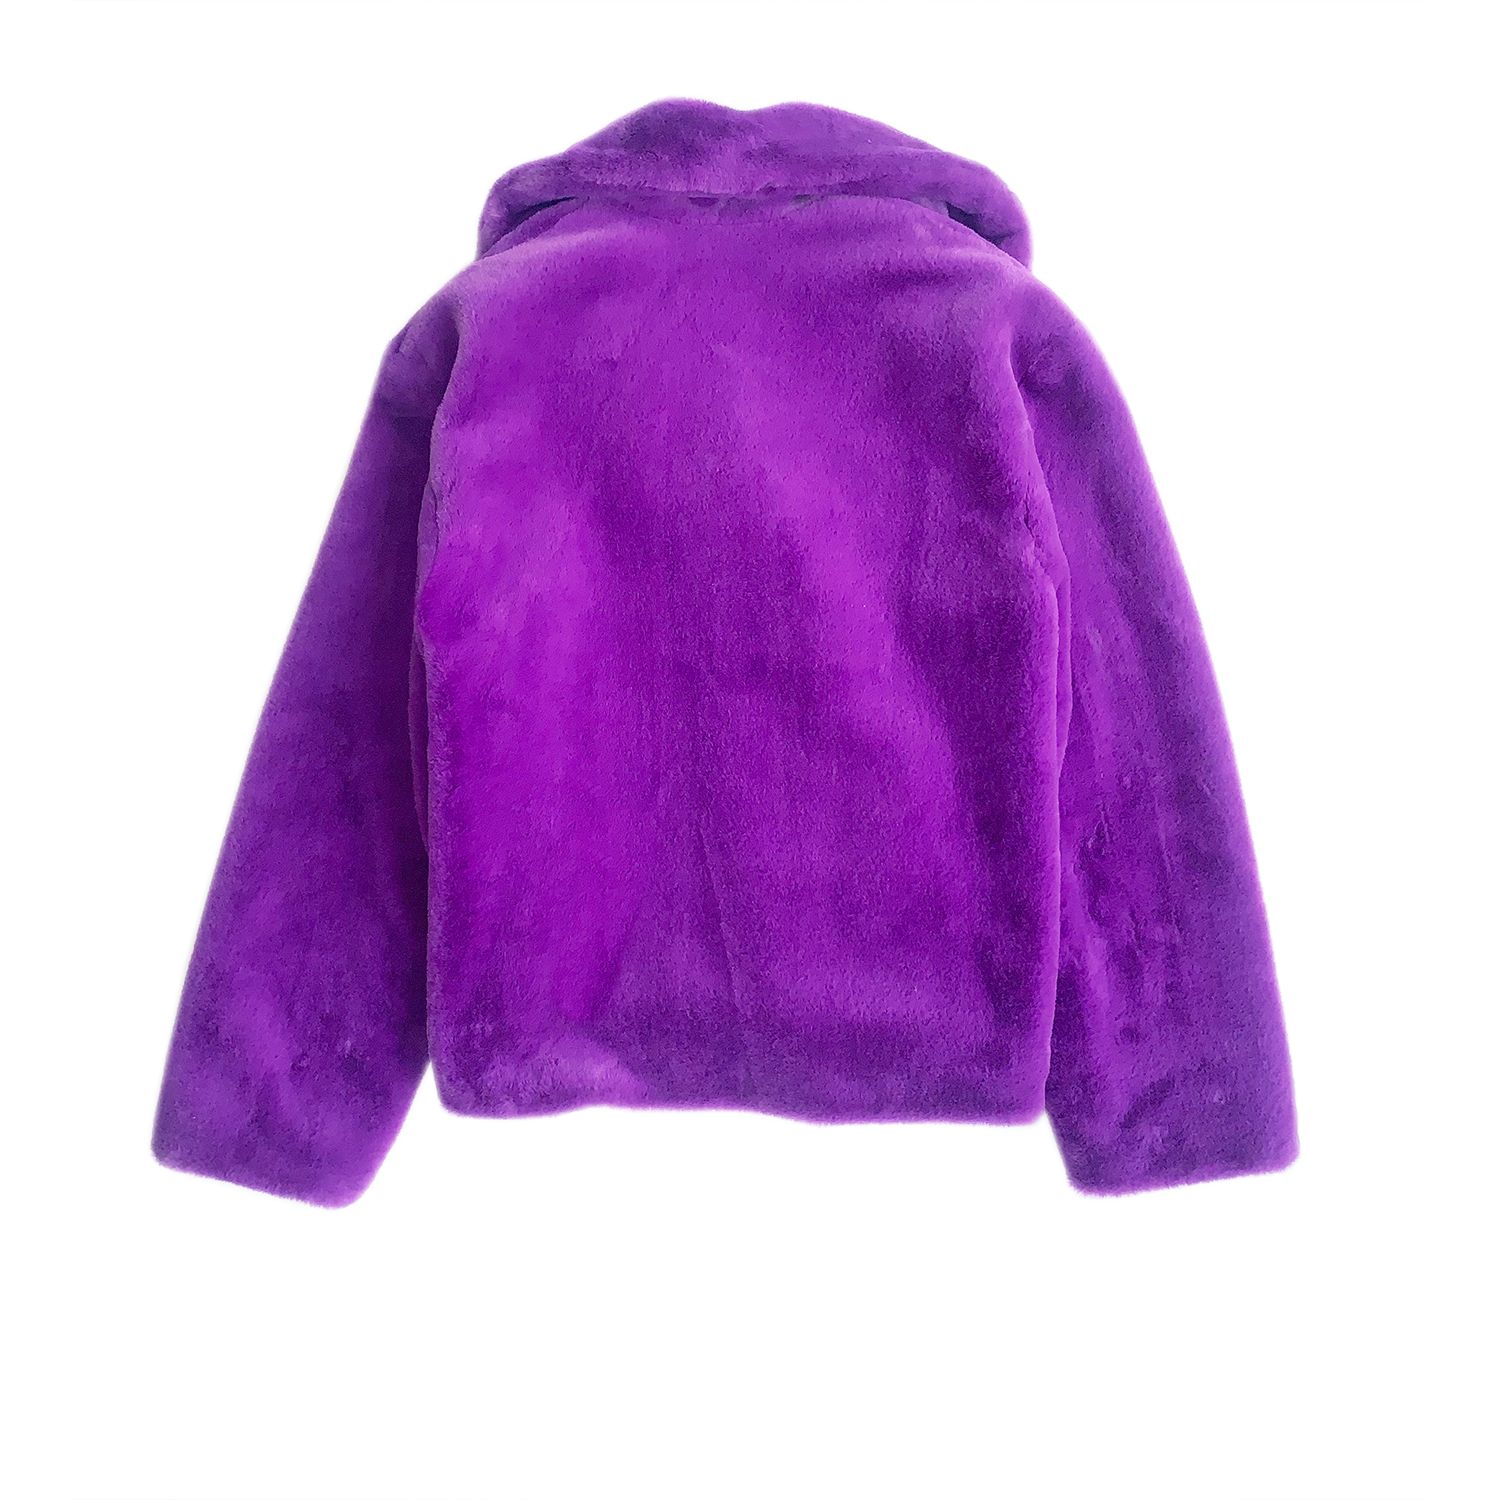 products/violetjacket_back.png